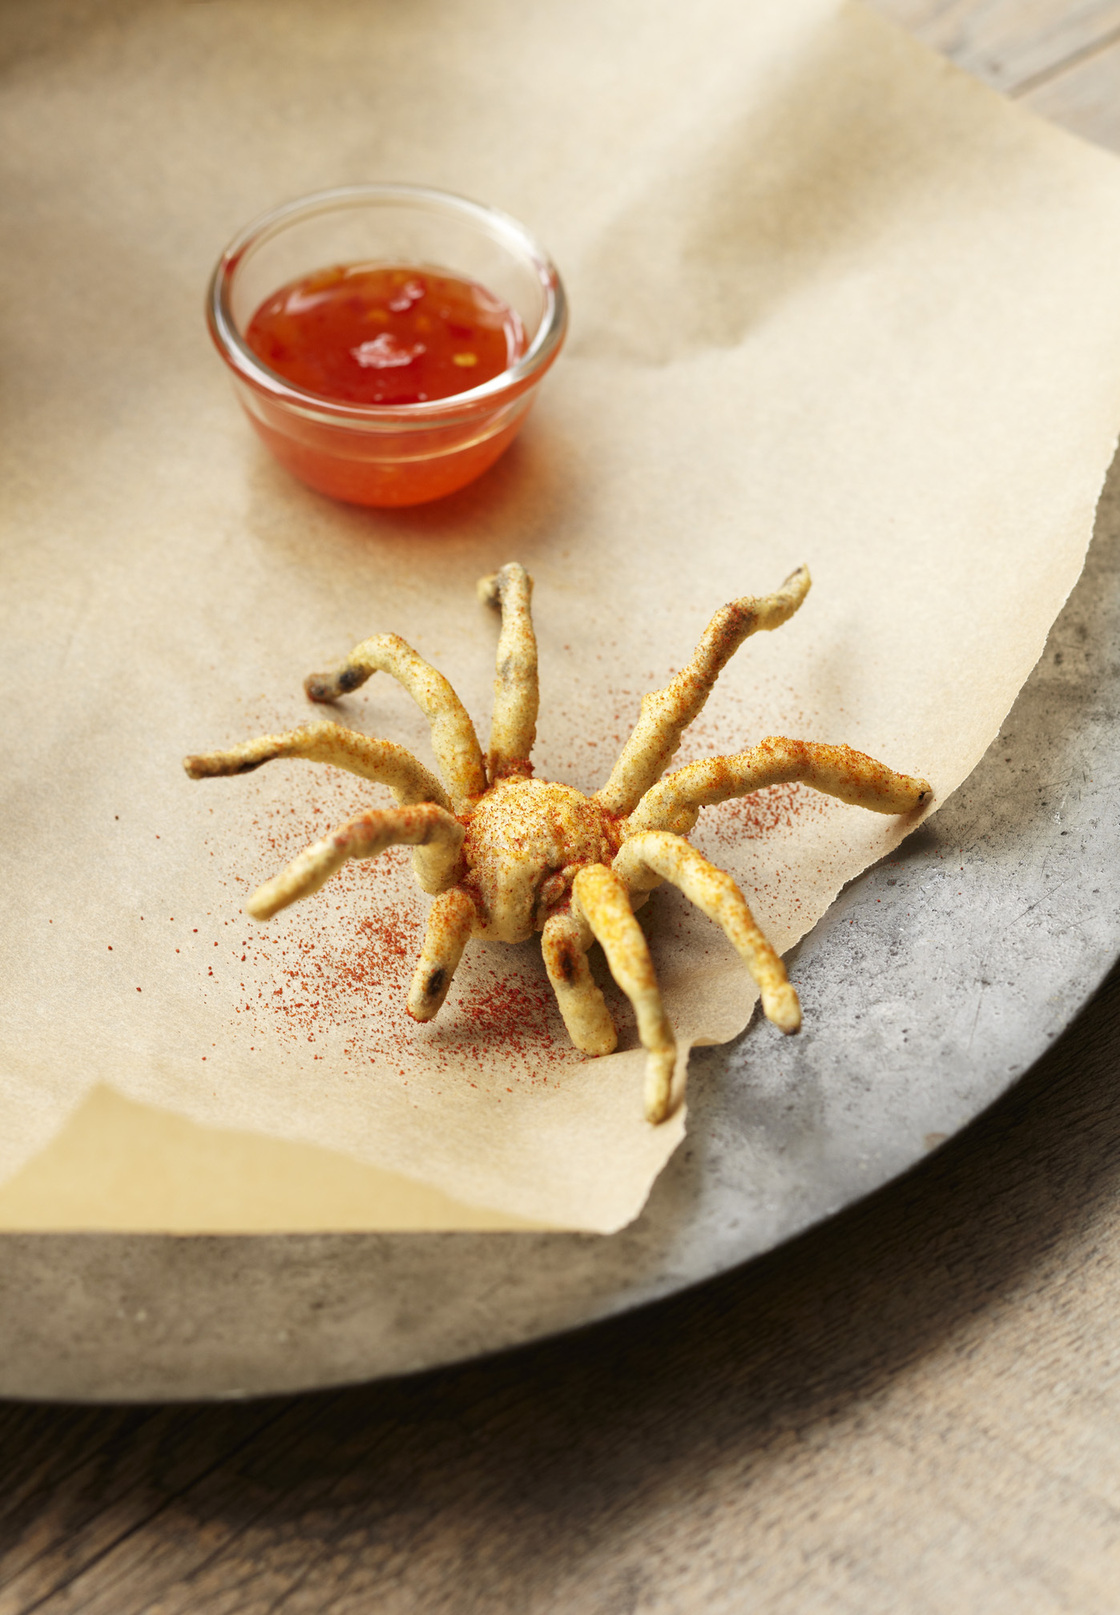 Gordon recommends dusting the deep-fried tarantula spider with smoked paprika.